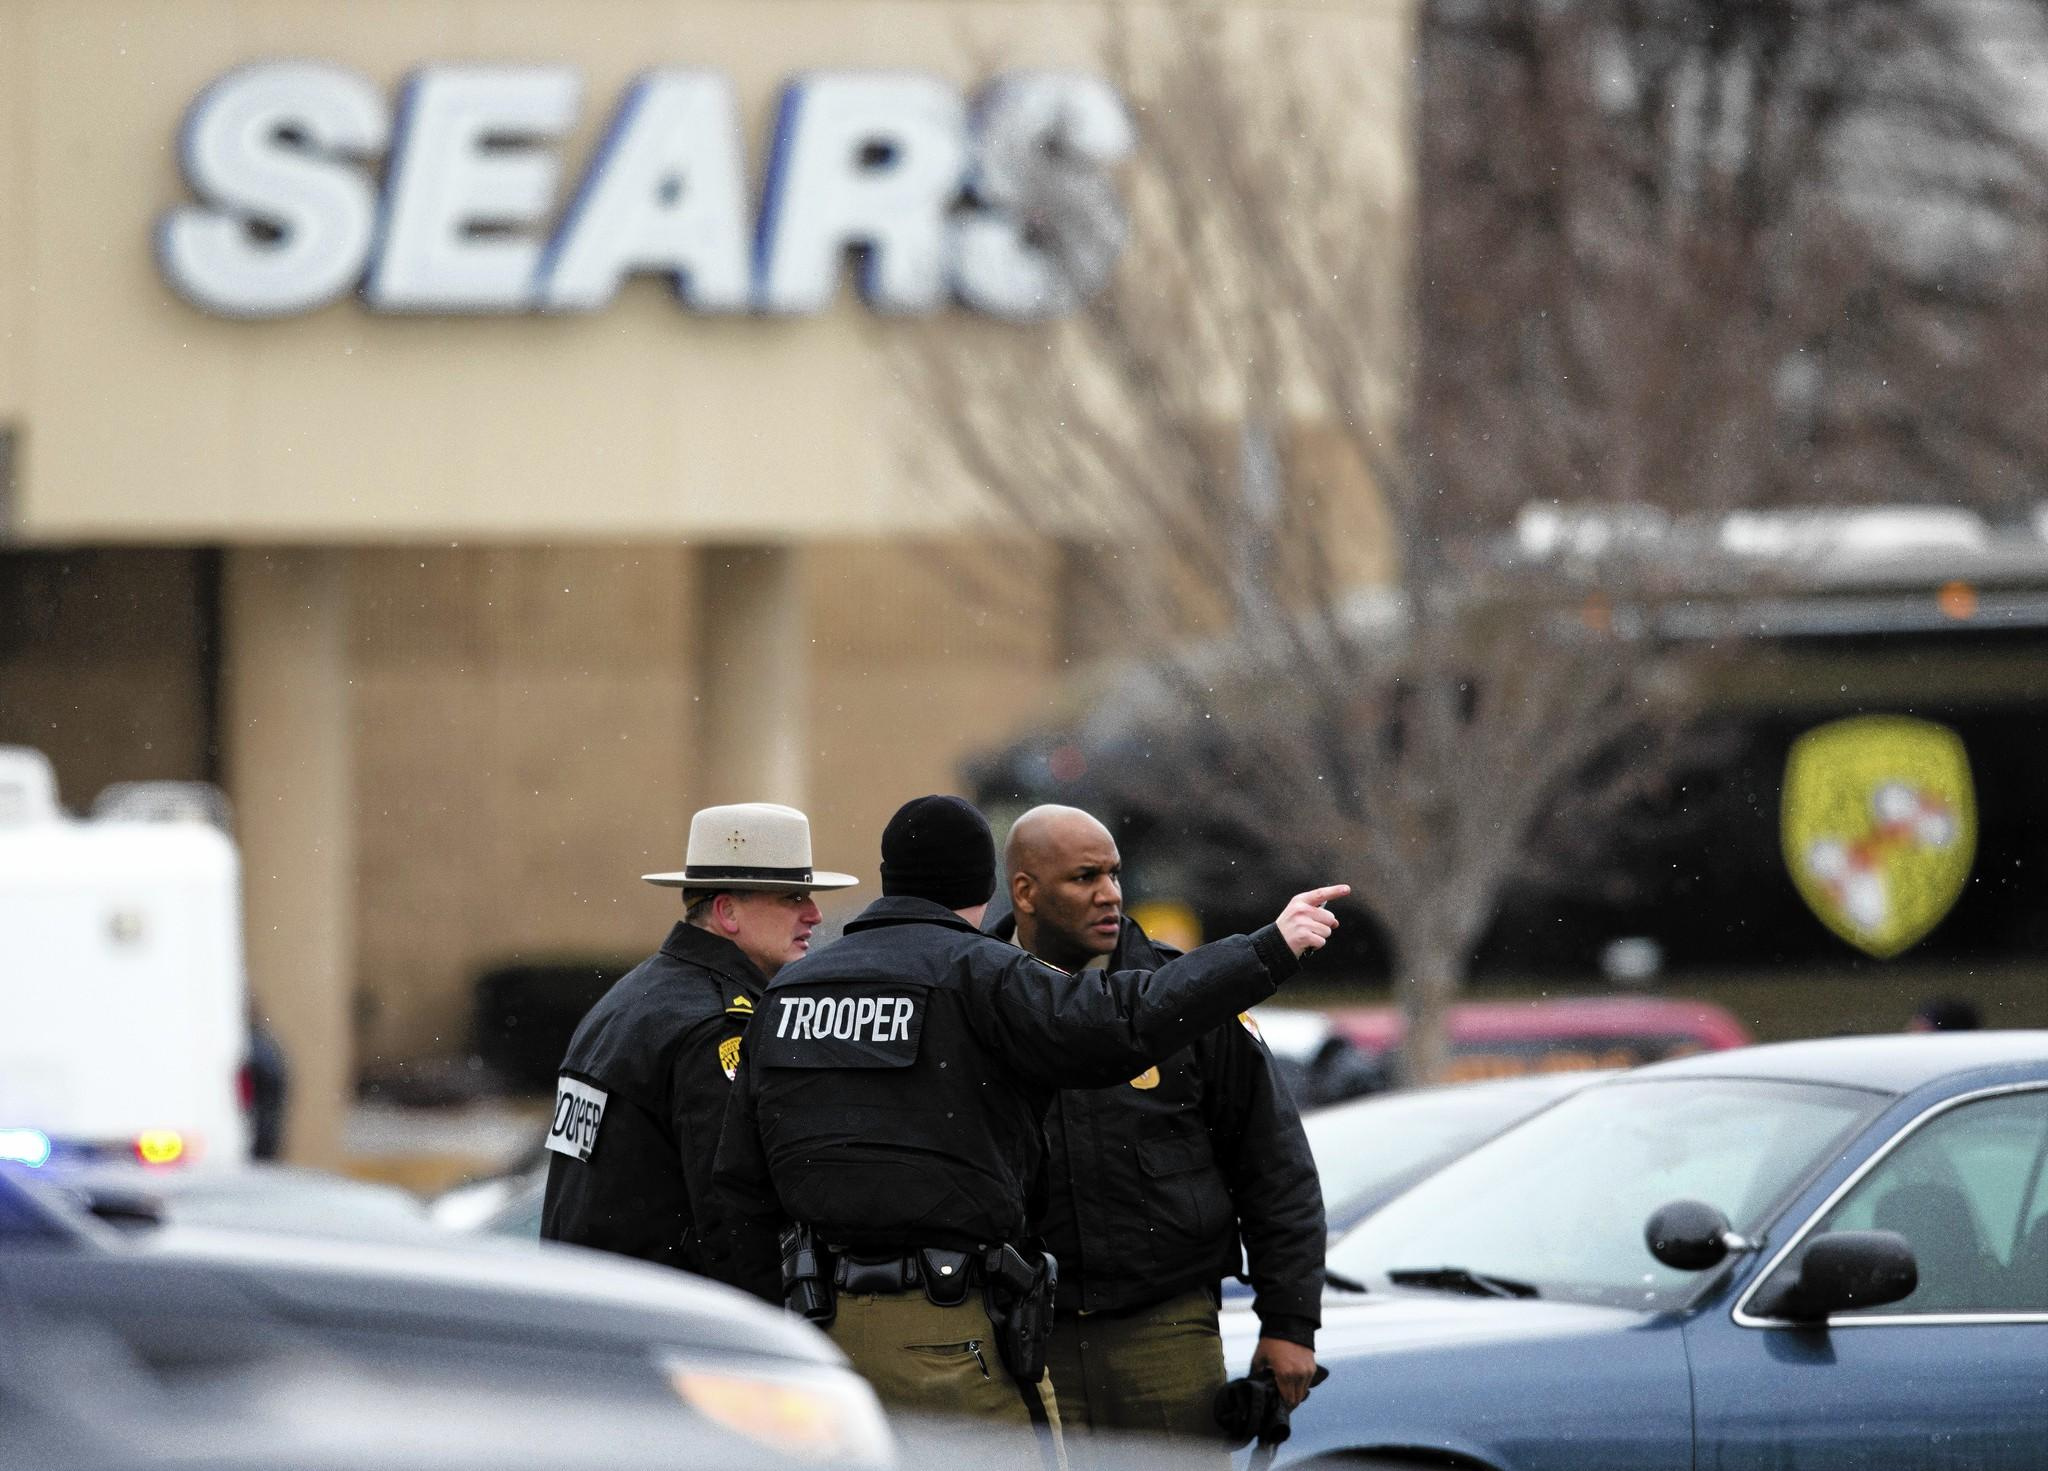 Law enforcement officers respond to the shooting at the Mall in Columbia, a shopping center in Columbia, Md.